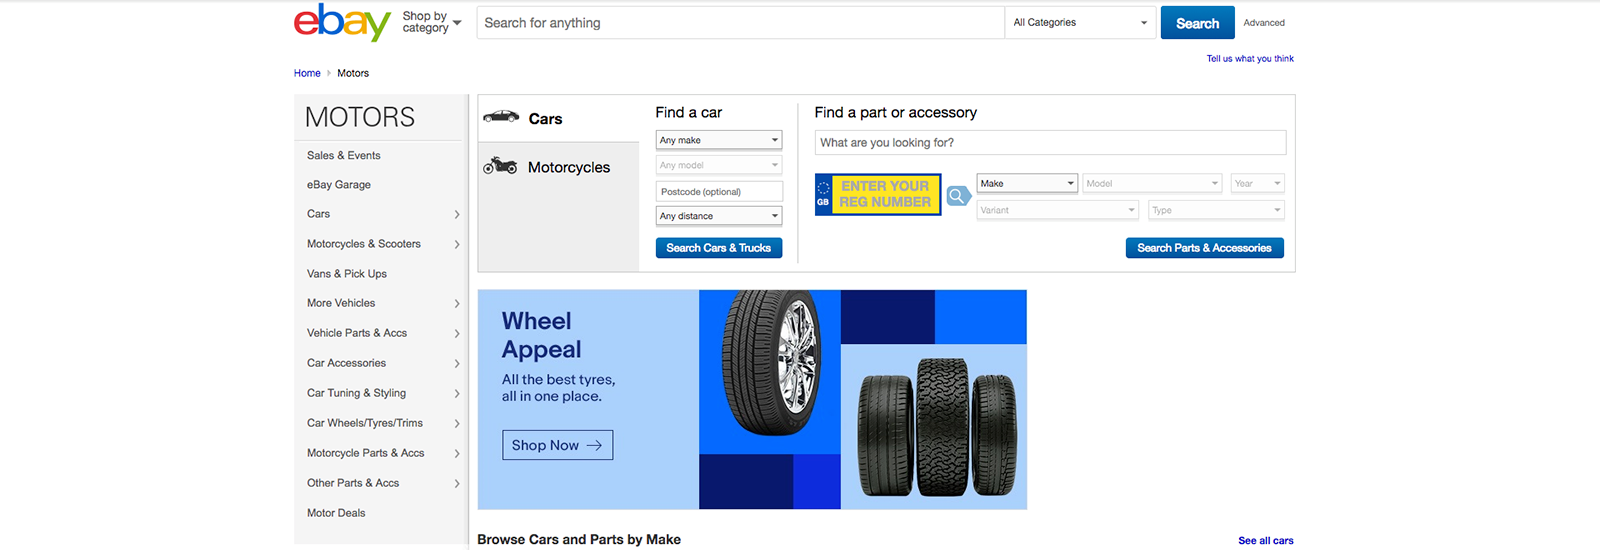 Best Website To Sell Your Car Privately